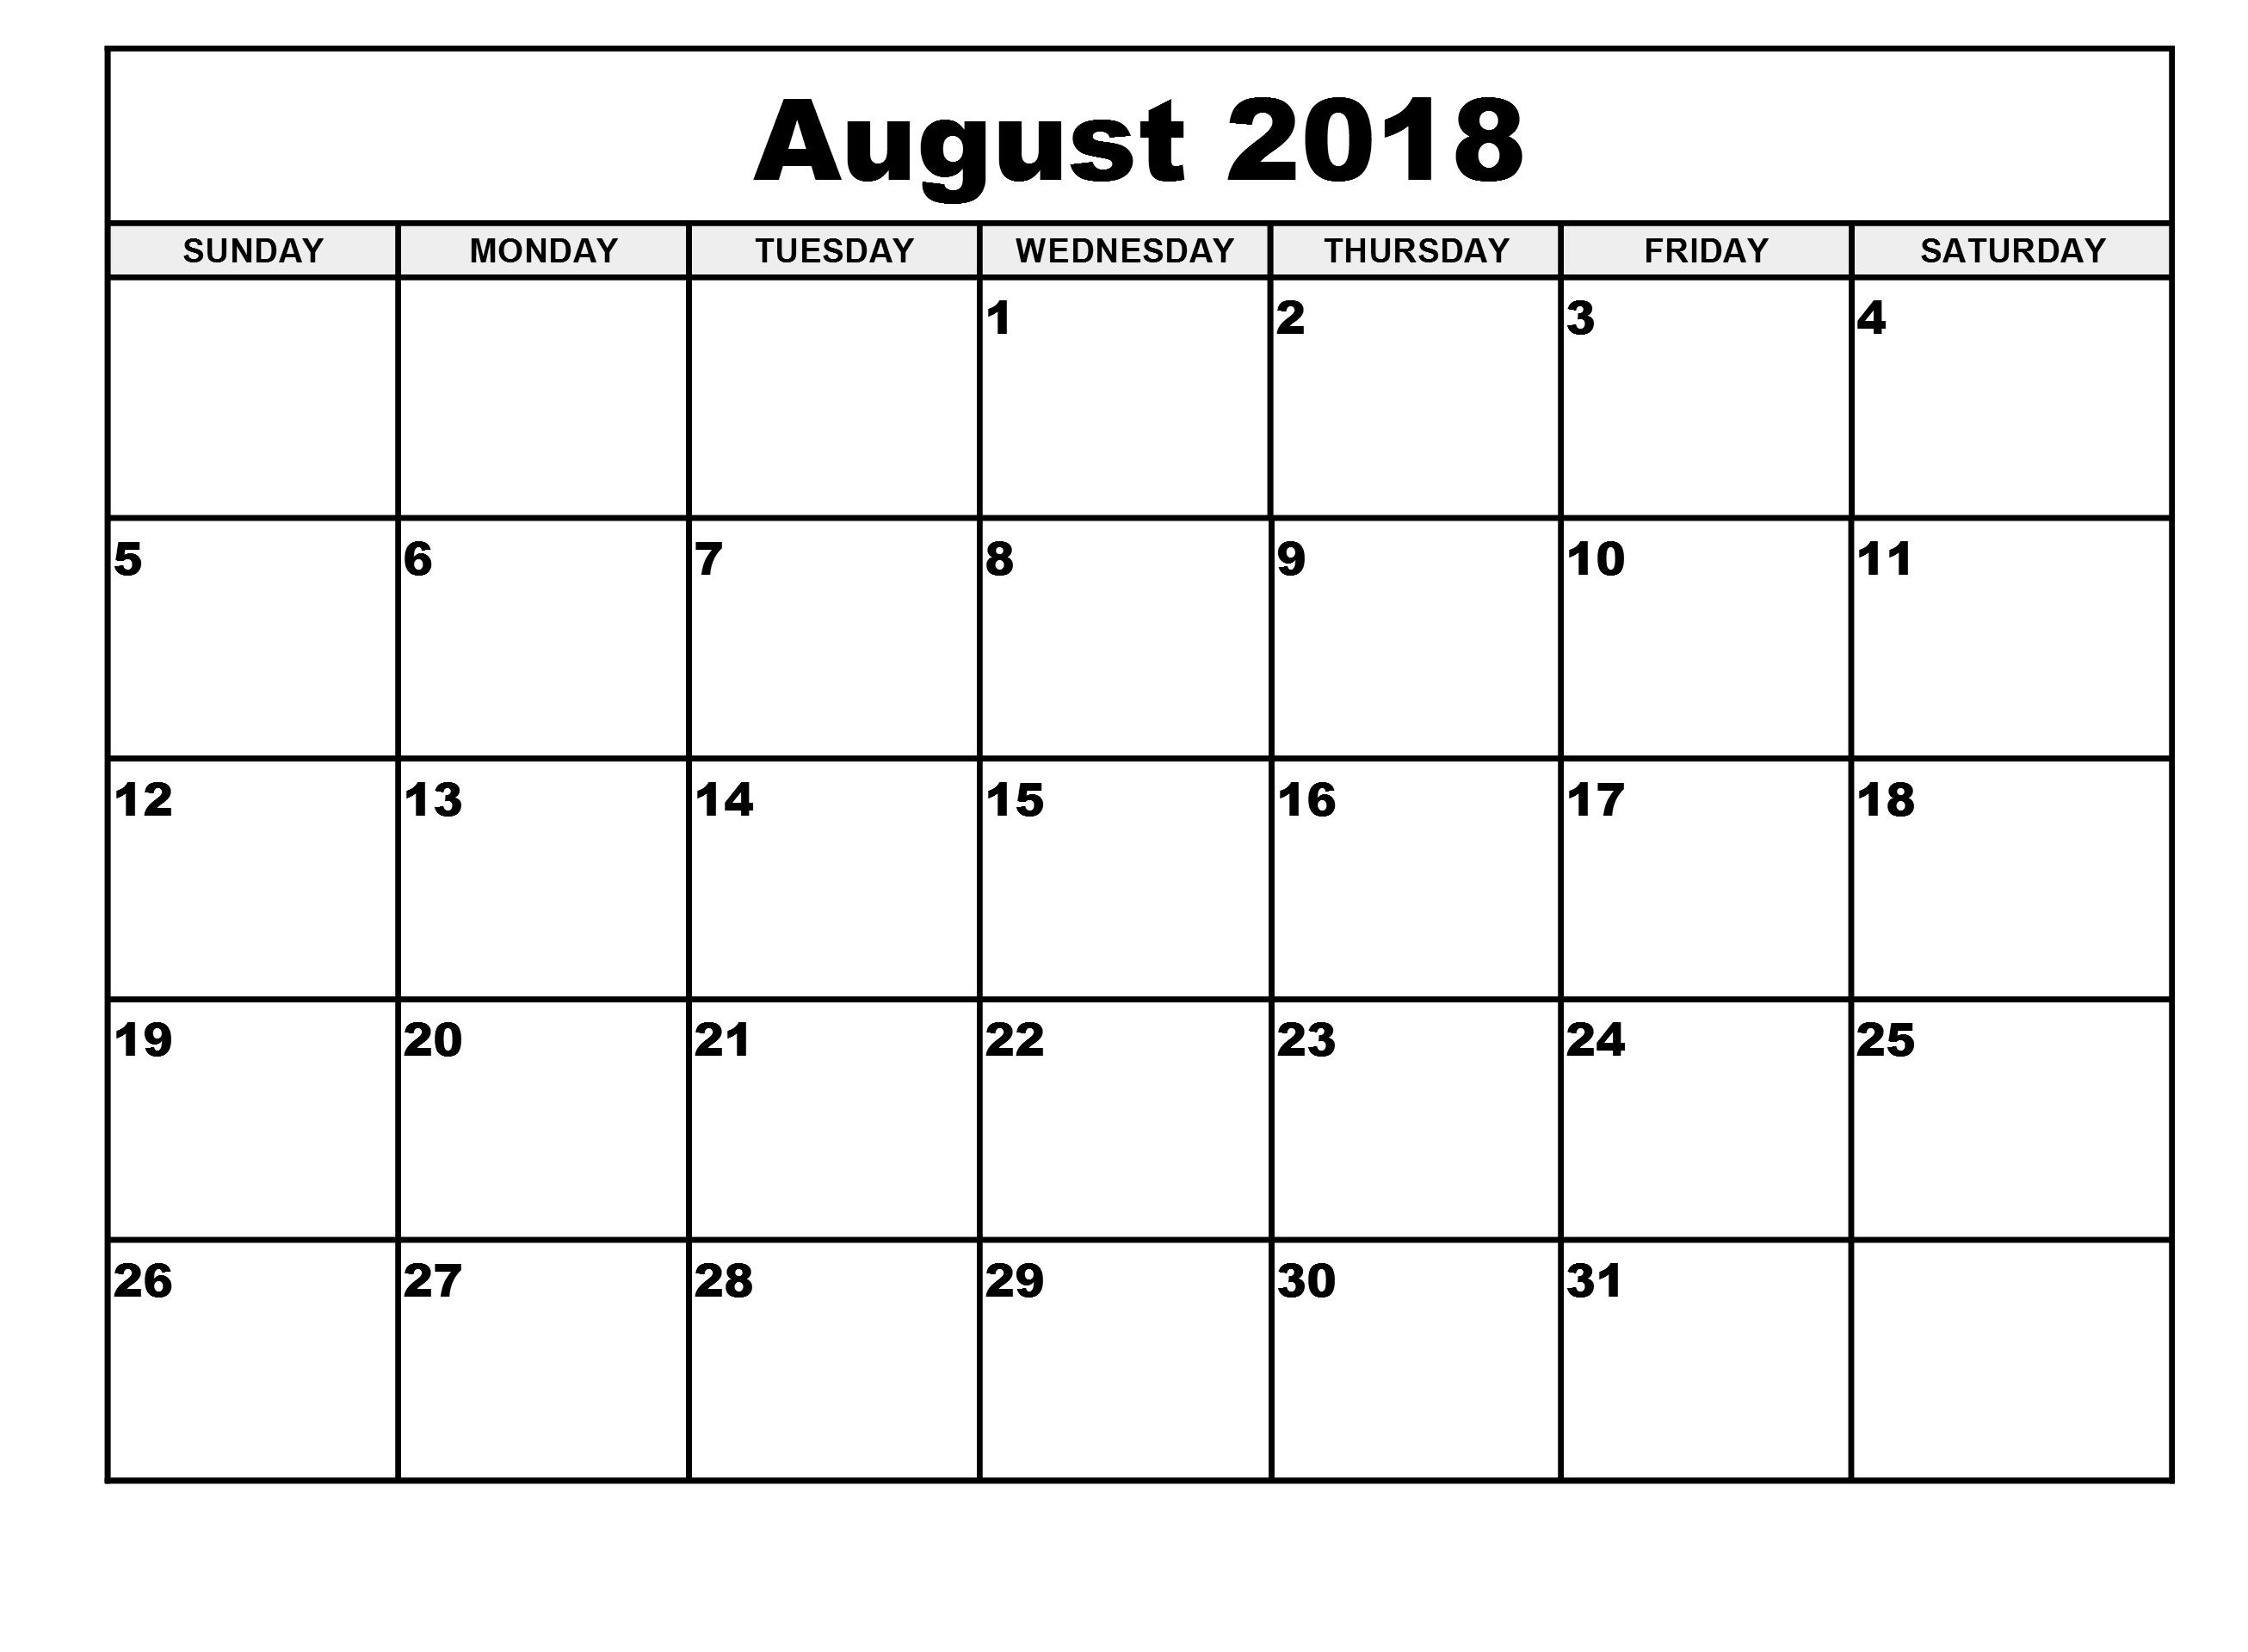 picture relating to Printable August Calendar Pdf named August 2018 Calendar, August 2018 Calendar Term, August 2018